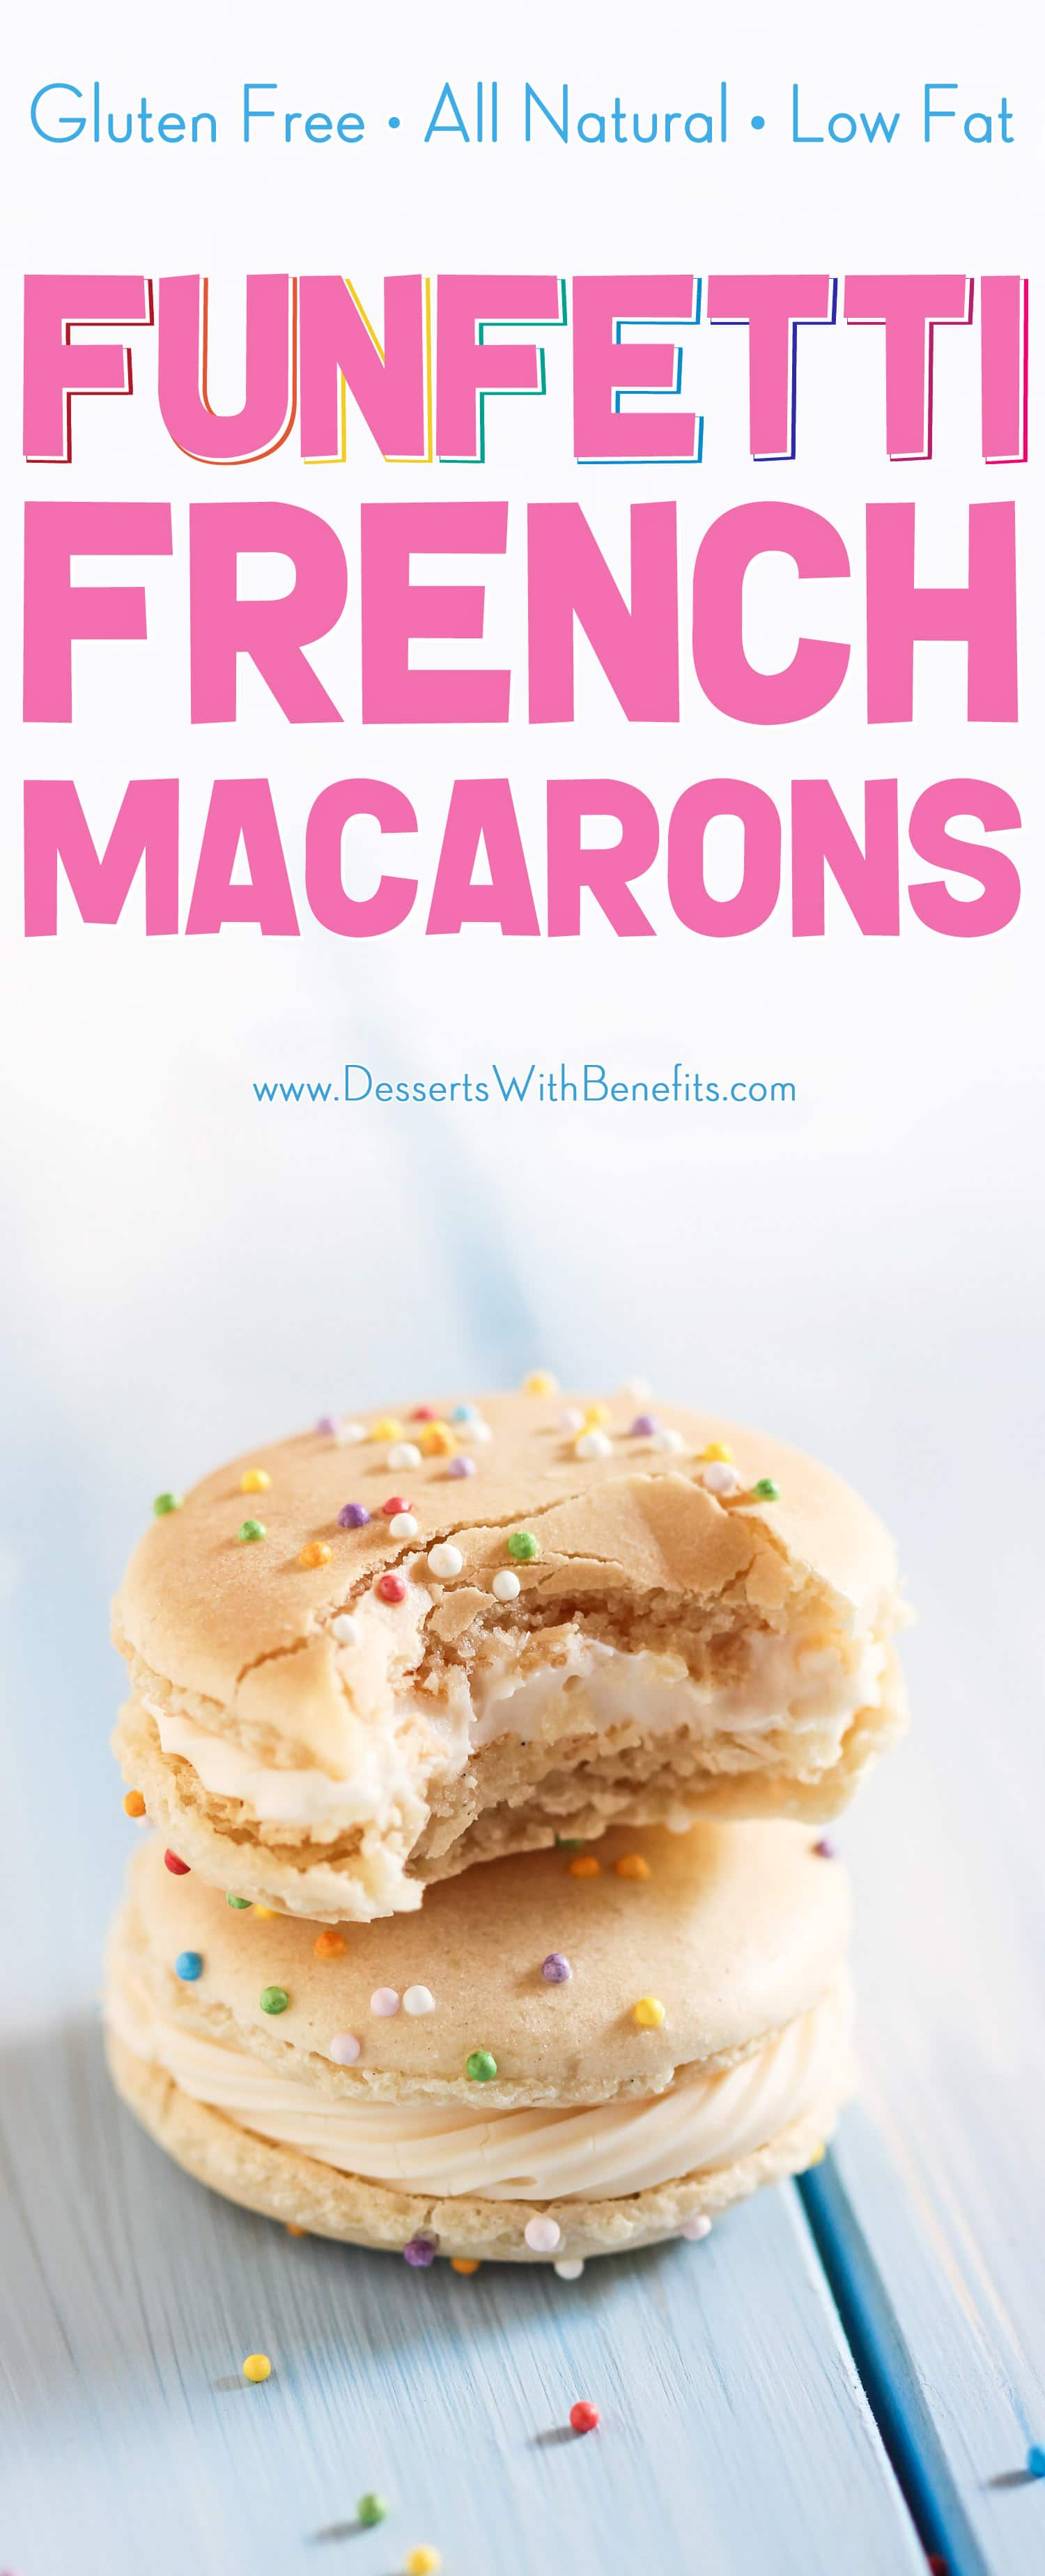 (How to make French Macarons)These bakery-worthy Funfetti French Macarons are adorable, bite-sized, sweet perfection! You'd never know they're made without white sugar, artificial flavorings, and artificial food dyes. These are all natural, low fat, and gluten free. Perfect for birthdays, parties, and celebrations.